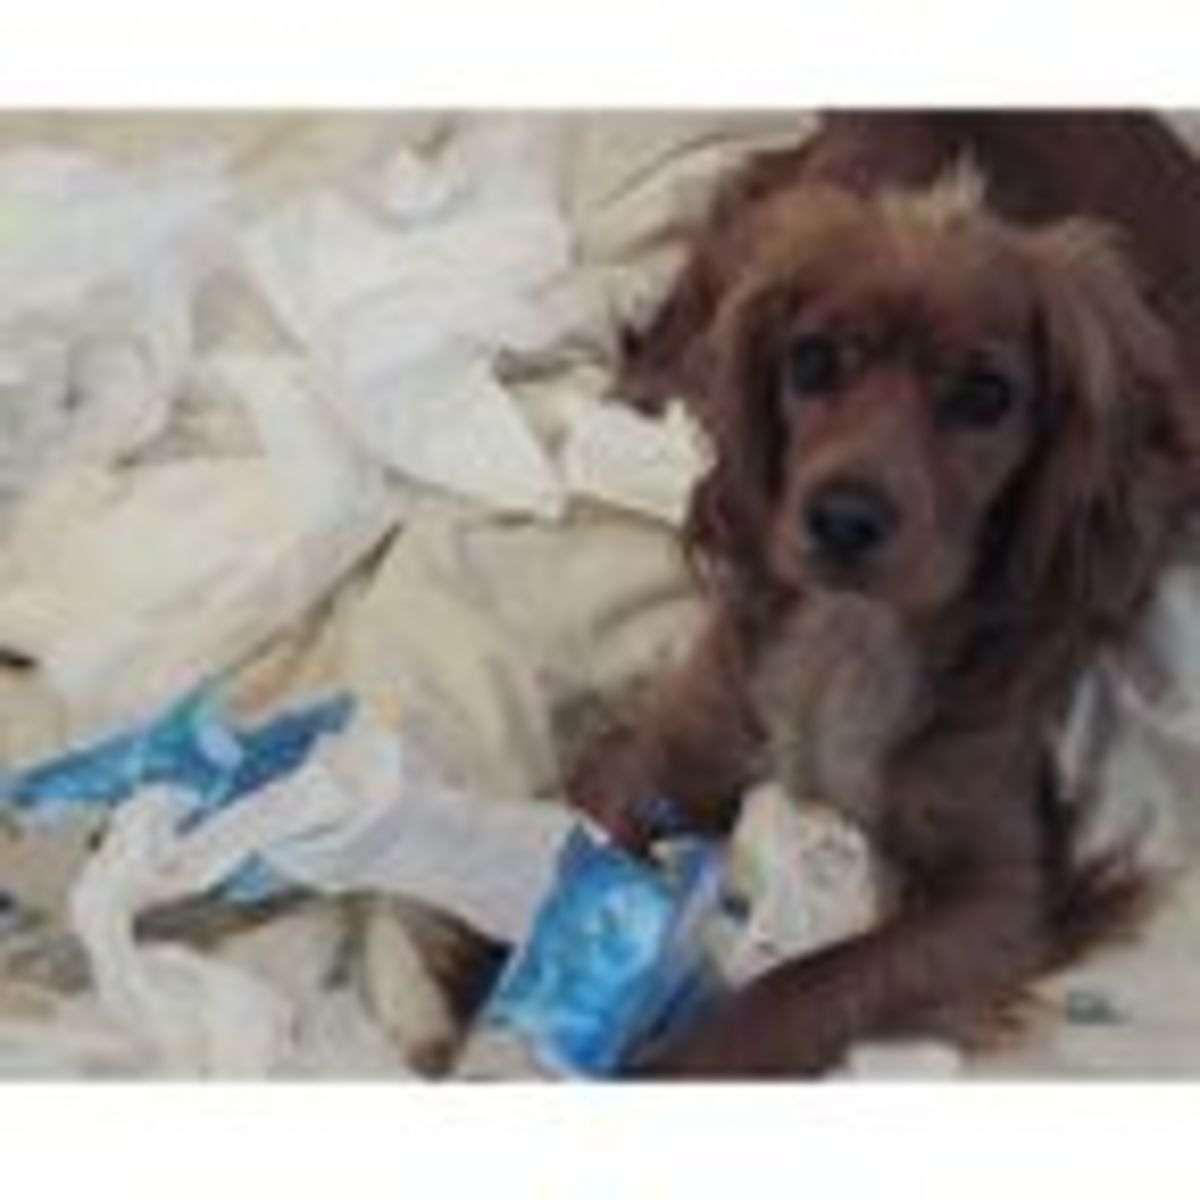 Why Do Dogs Like to Shred Tissues? | Psychology Today